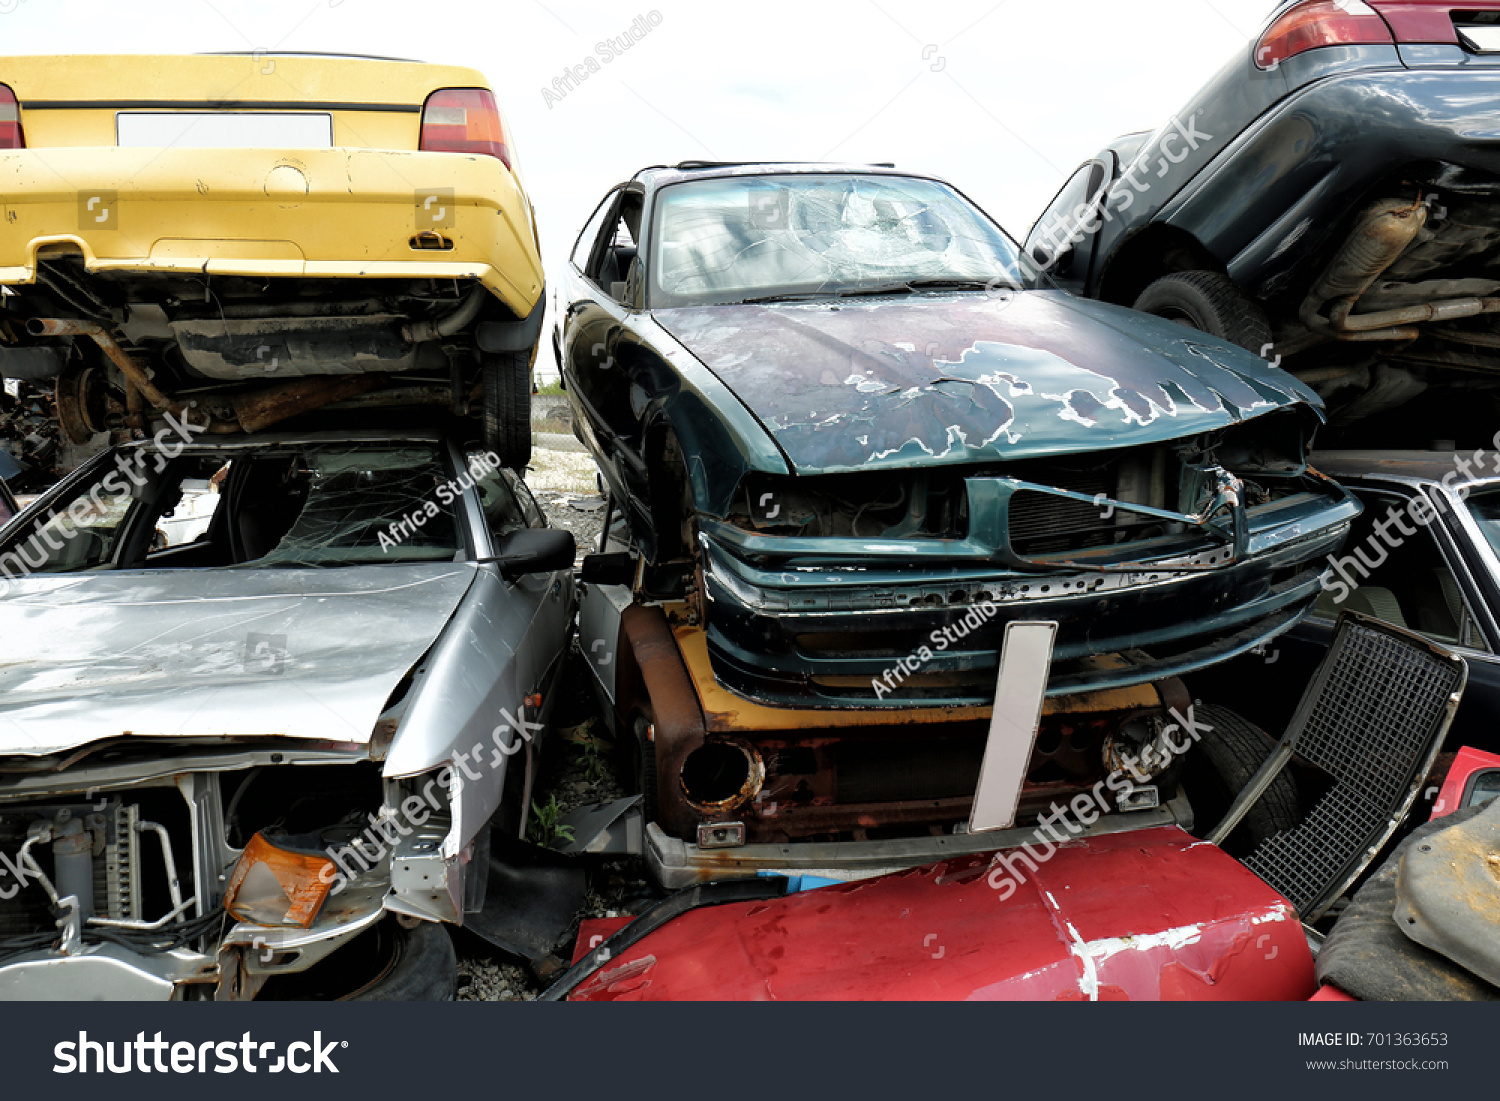 Piled Crushed Cars On Salvage Yard Stock Photo (Download Now ...